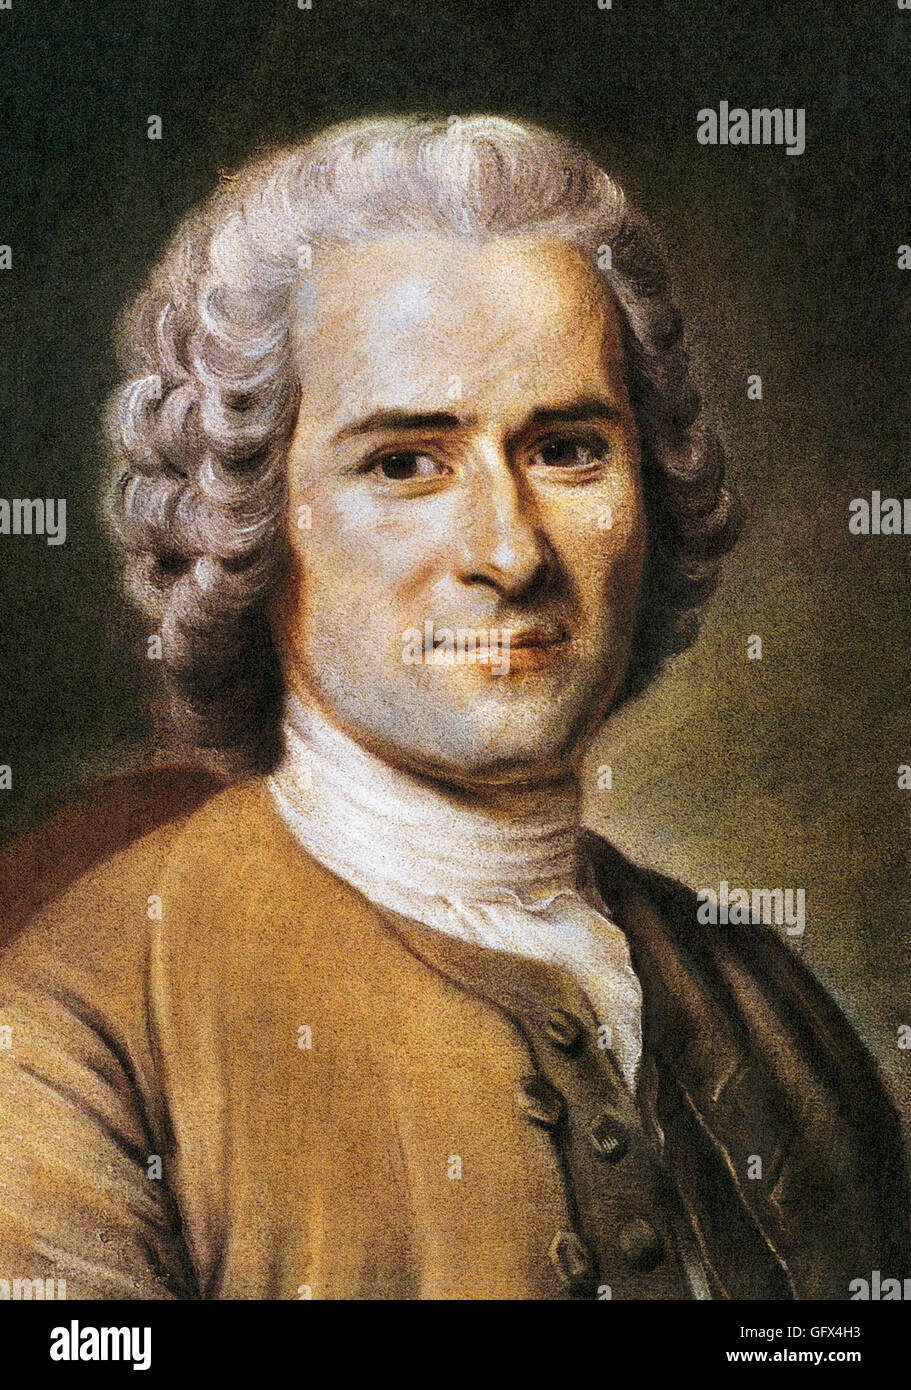 Jean Jacques Rousseau. Portrait of the Geneva born philosopher, Jean-Jacques Rousseau (1712-1778) by Maurice Quentin - Stock Image